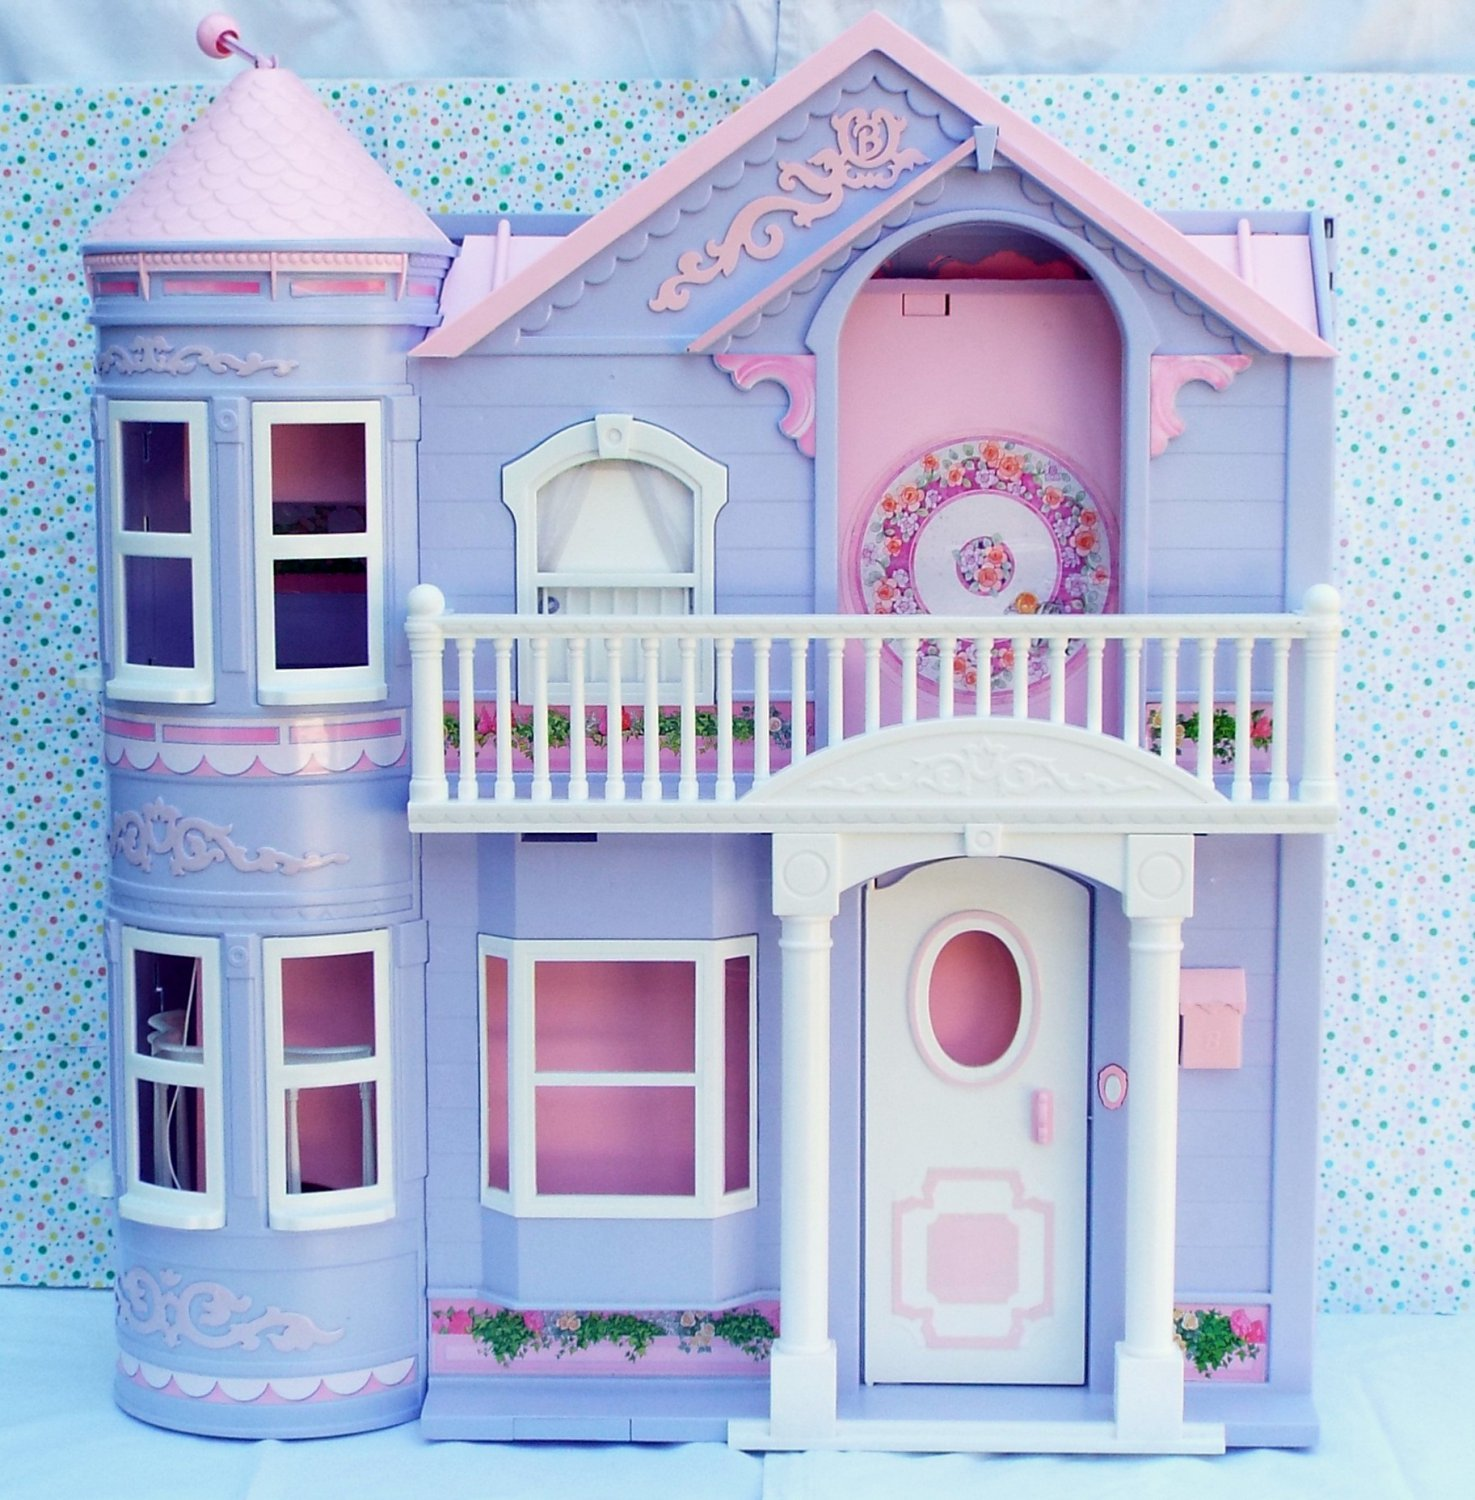 6 15 sold barbie dream house dollhouse 2000 purple for Dream home book tour